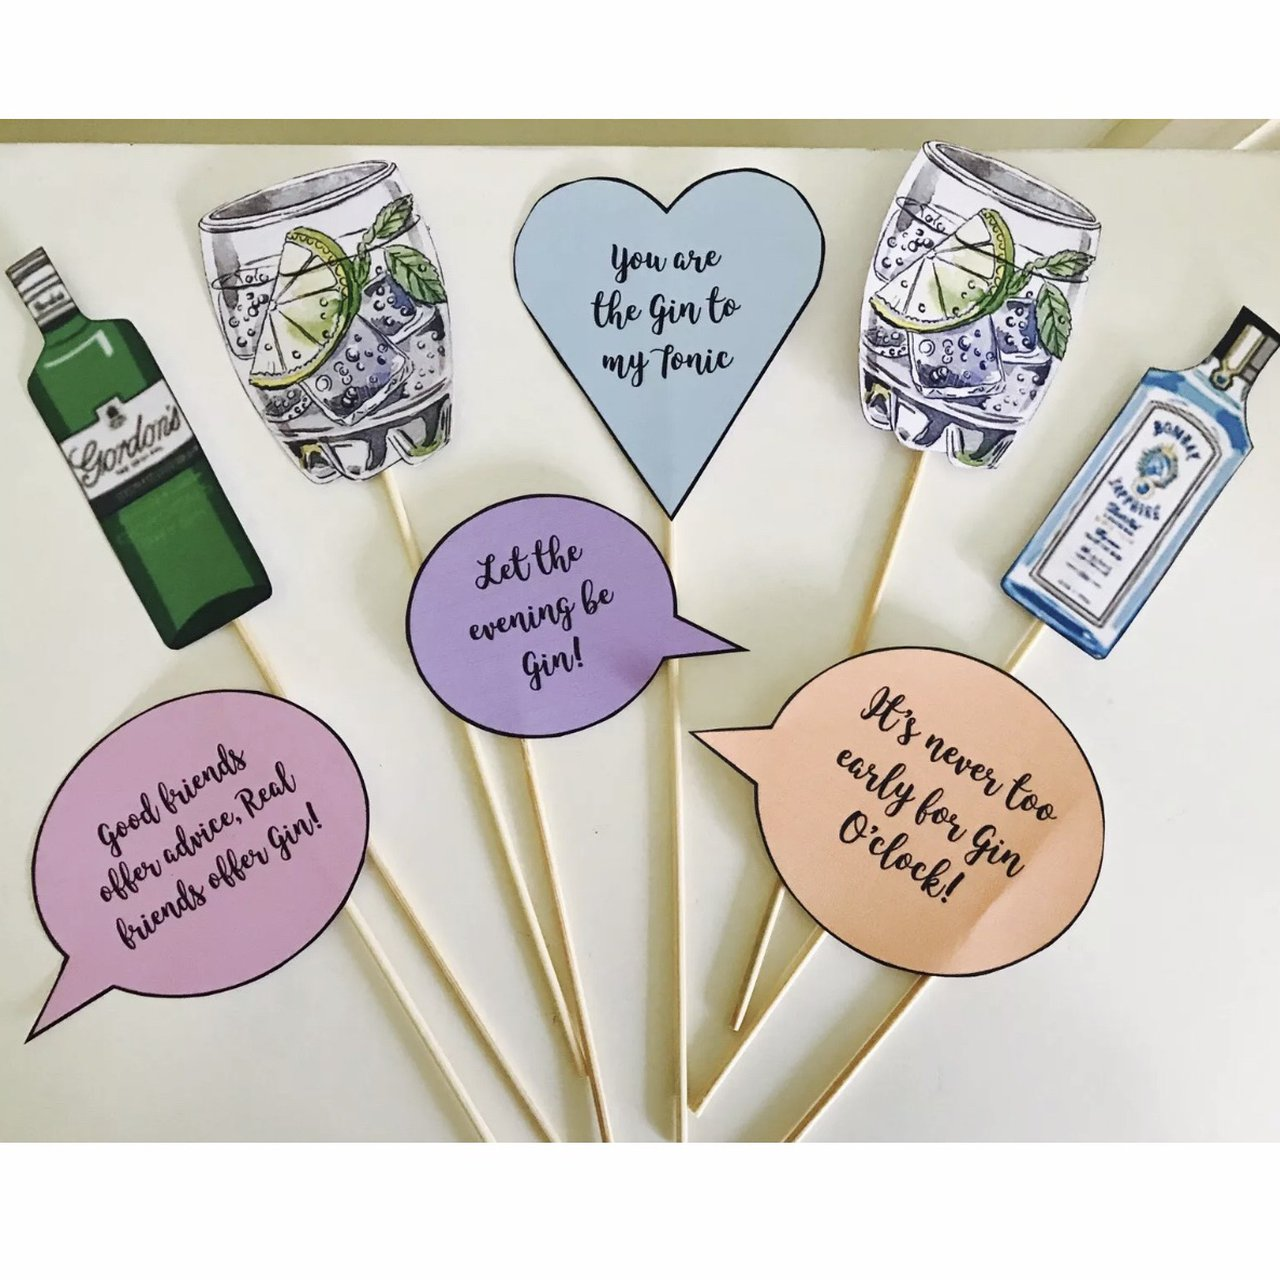 Gin & Tonic Drink Quotes Photo Booth Selfie Props x8... - Depop